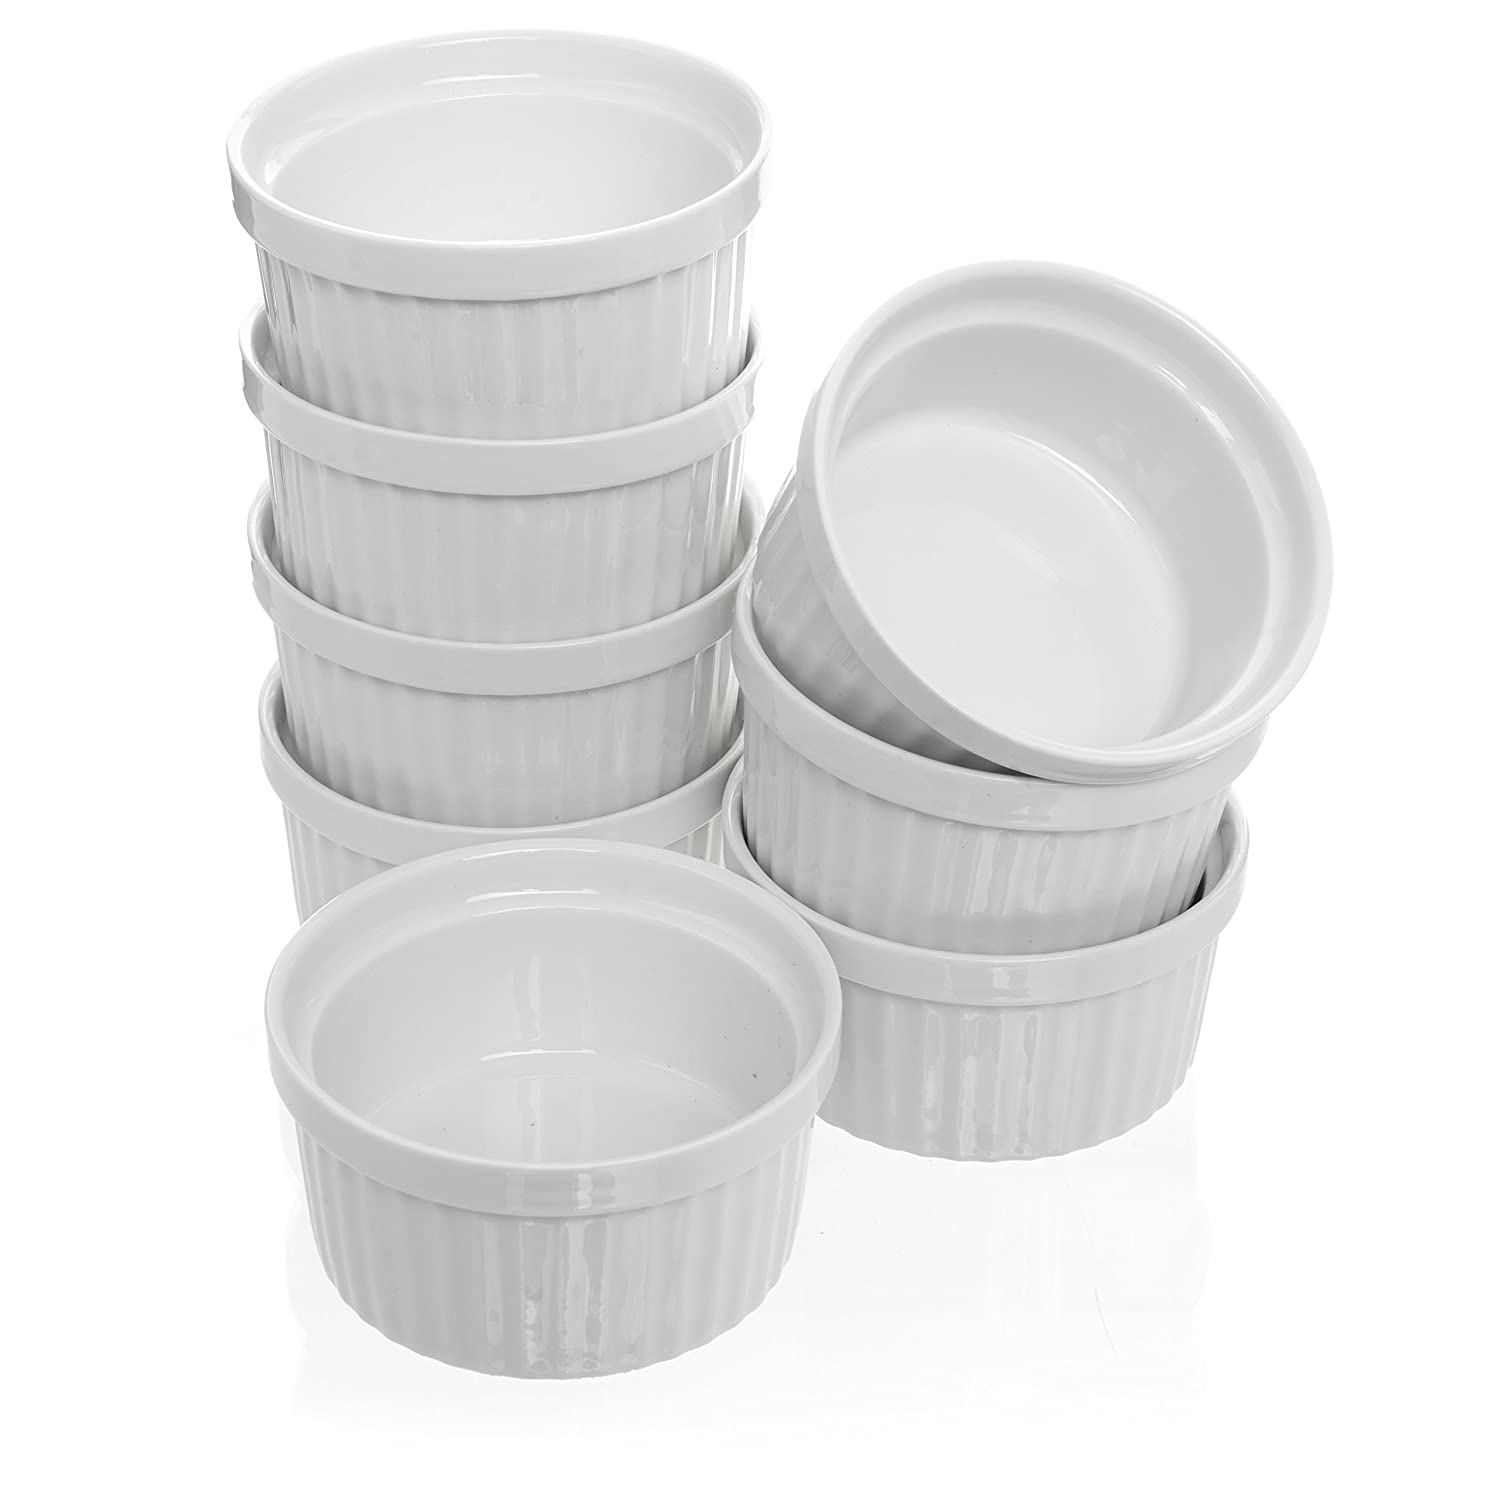 (Set of 8) 4 oz. Porcelain Ramekins, White Bakeware, Soufflé Cups Dishes, Creme Brulee, Pudding, Custard Cups, Dessert Bowls, Condiment Servers Soufflé Cups Dishes California Home Goods